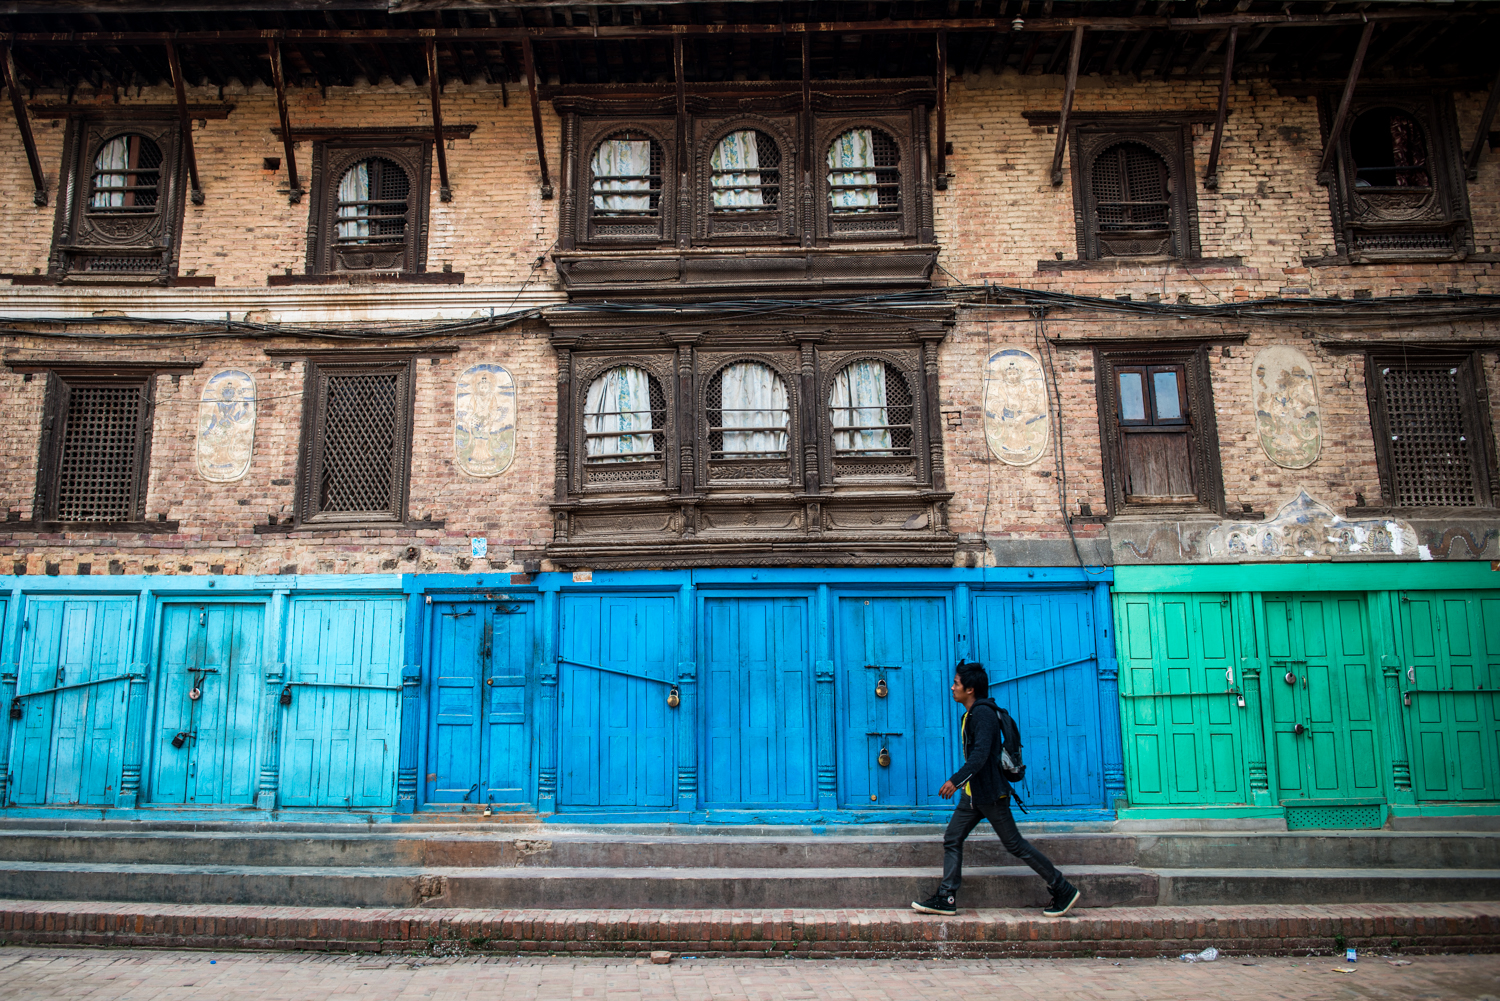 A man walks along closed shops near Durbar Square - Kathmandu, Nepal.